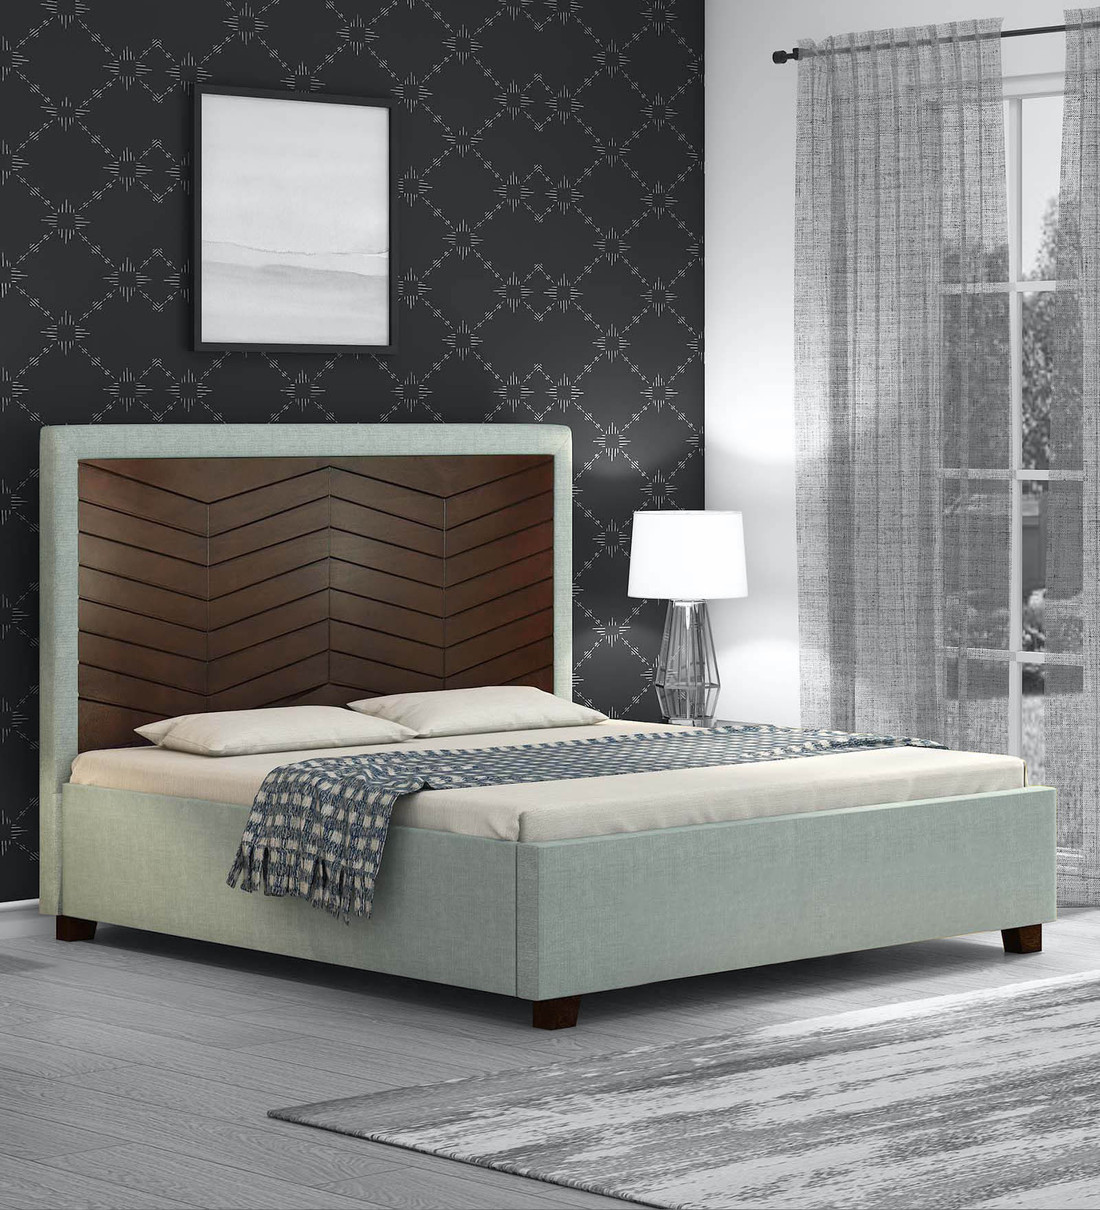 Buy Bautista Queen Size Bed In Grey Colour Casacraft By Pepperfry Online Queen Size Upholstered Beds Beds Furniture Pepperfry Product